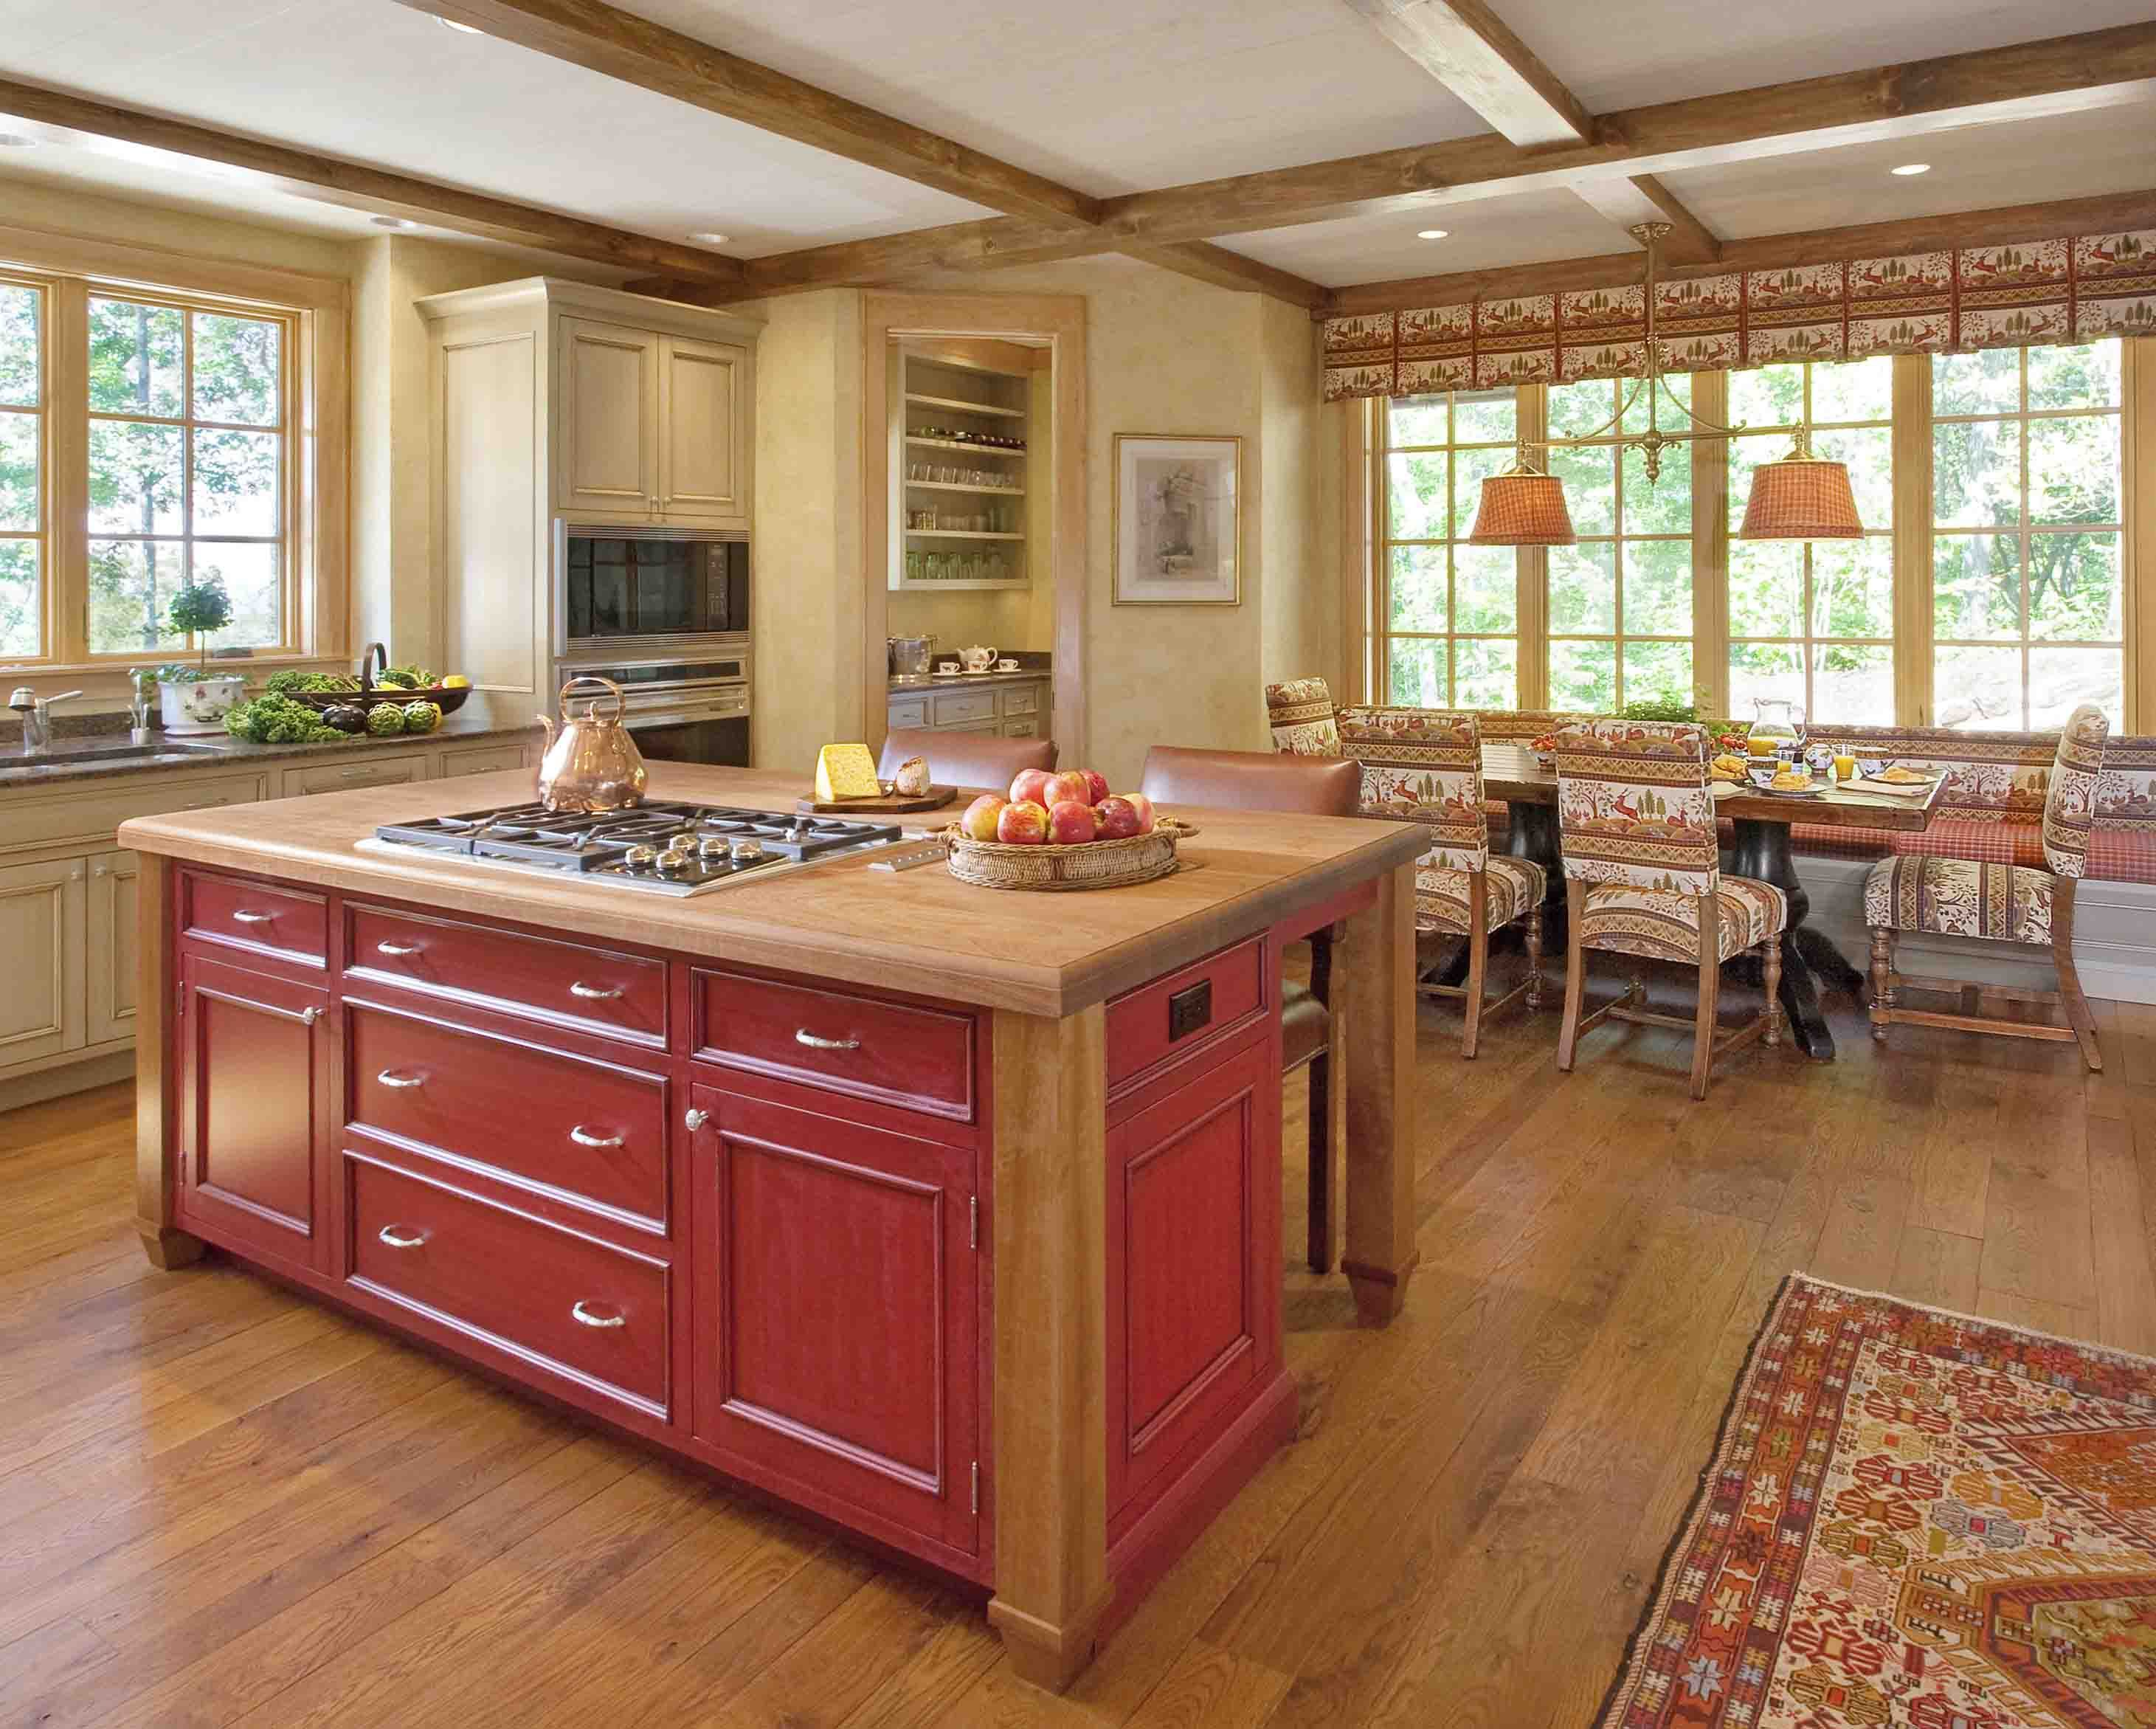 There are so many ideas that we can apply in kitchen decoration